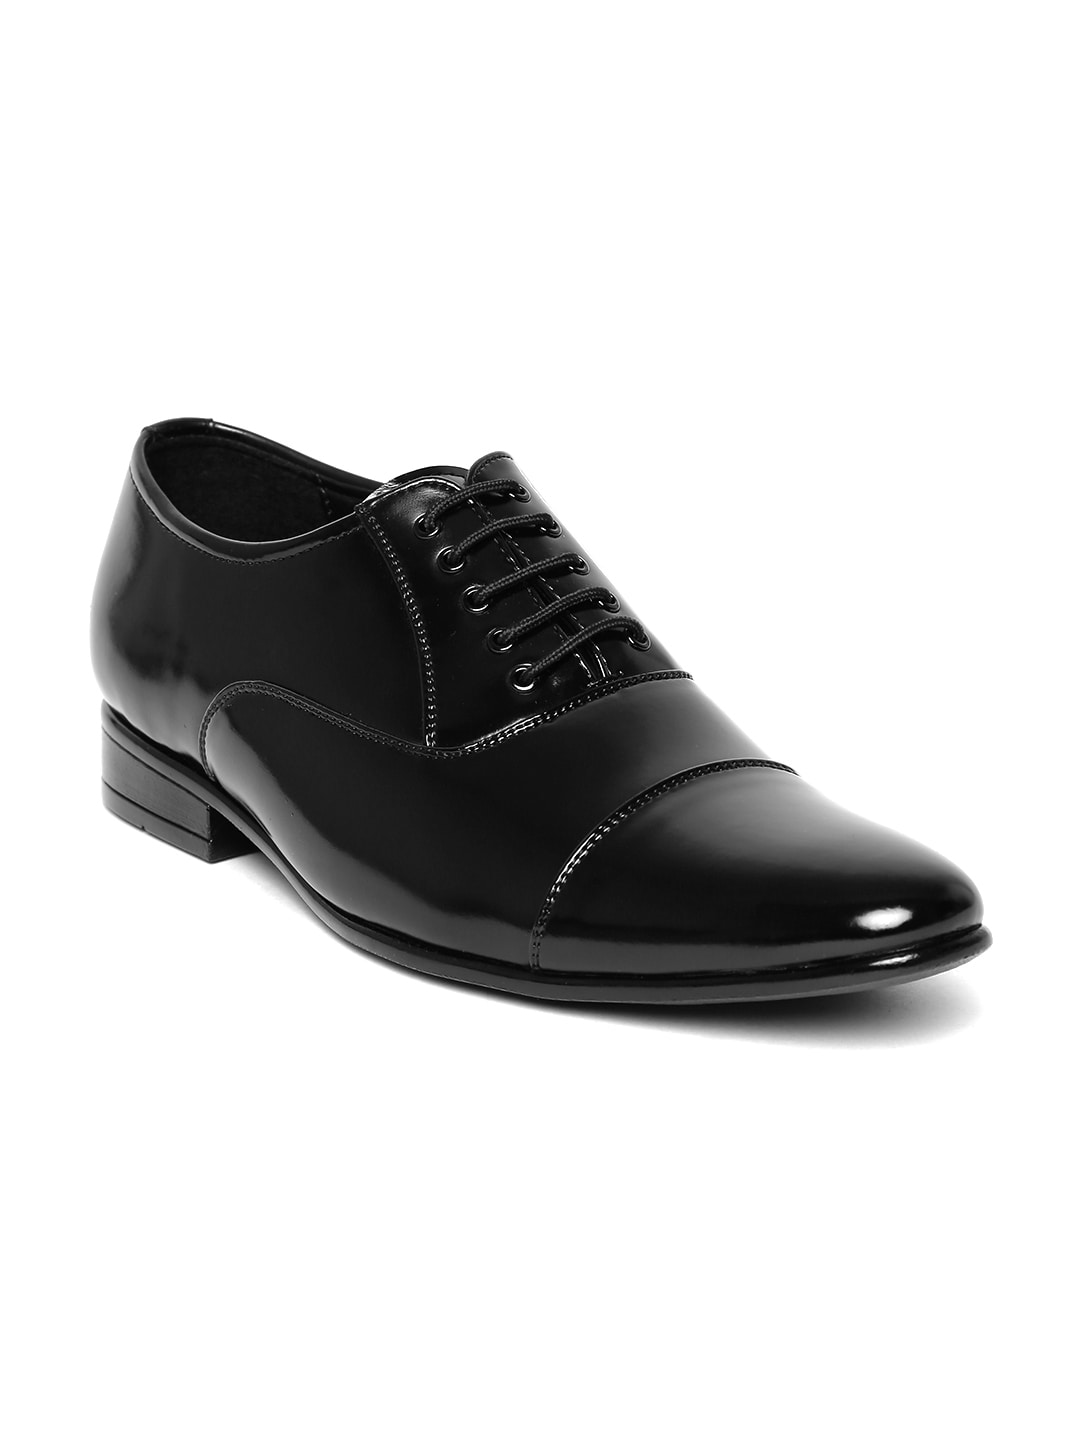 Buy San Frissco Black Patent Formal Men's  Shoes At Best Price